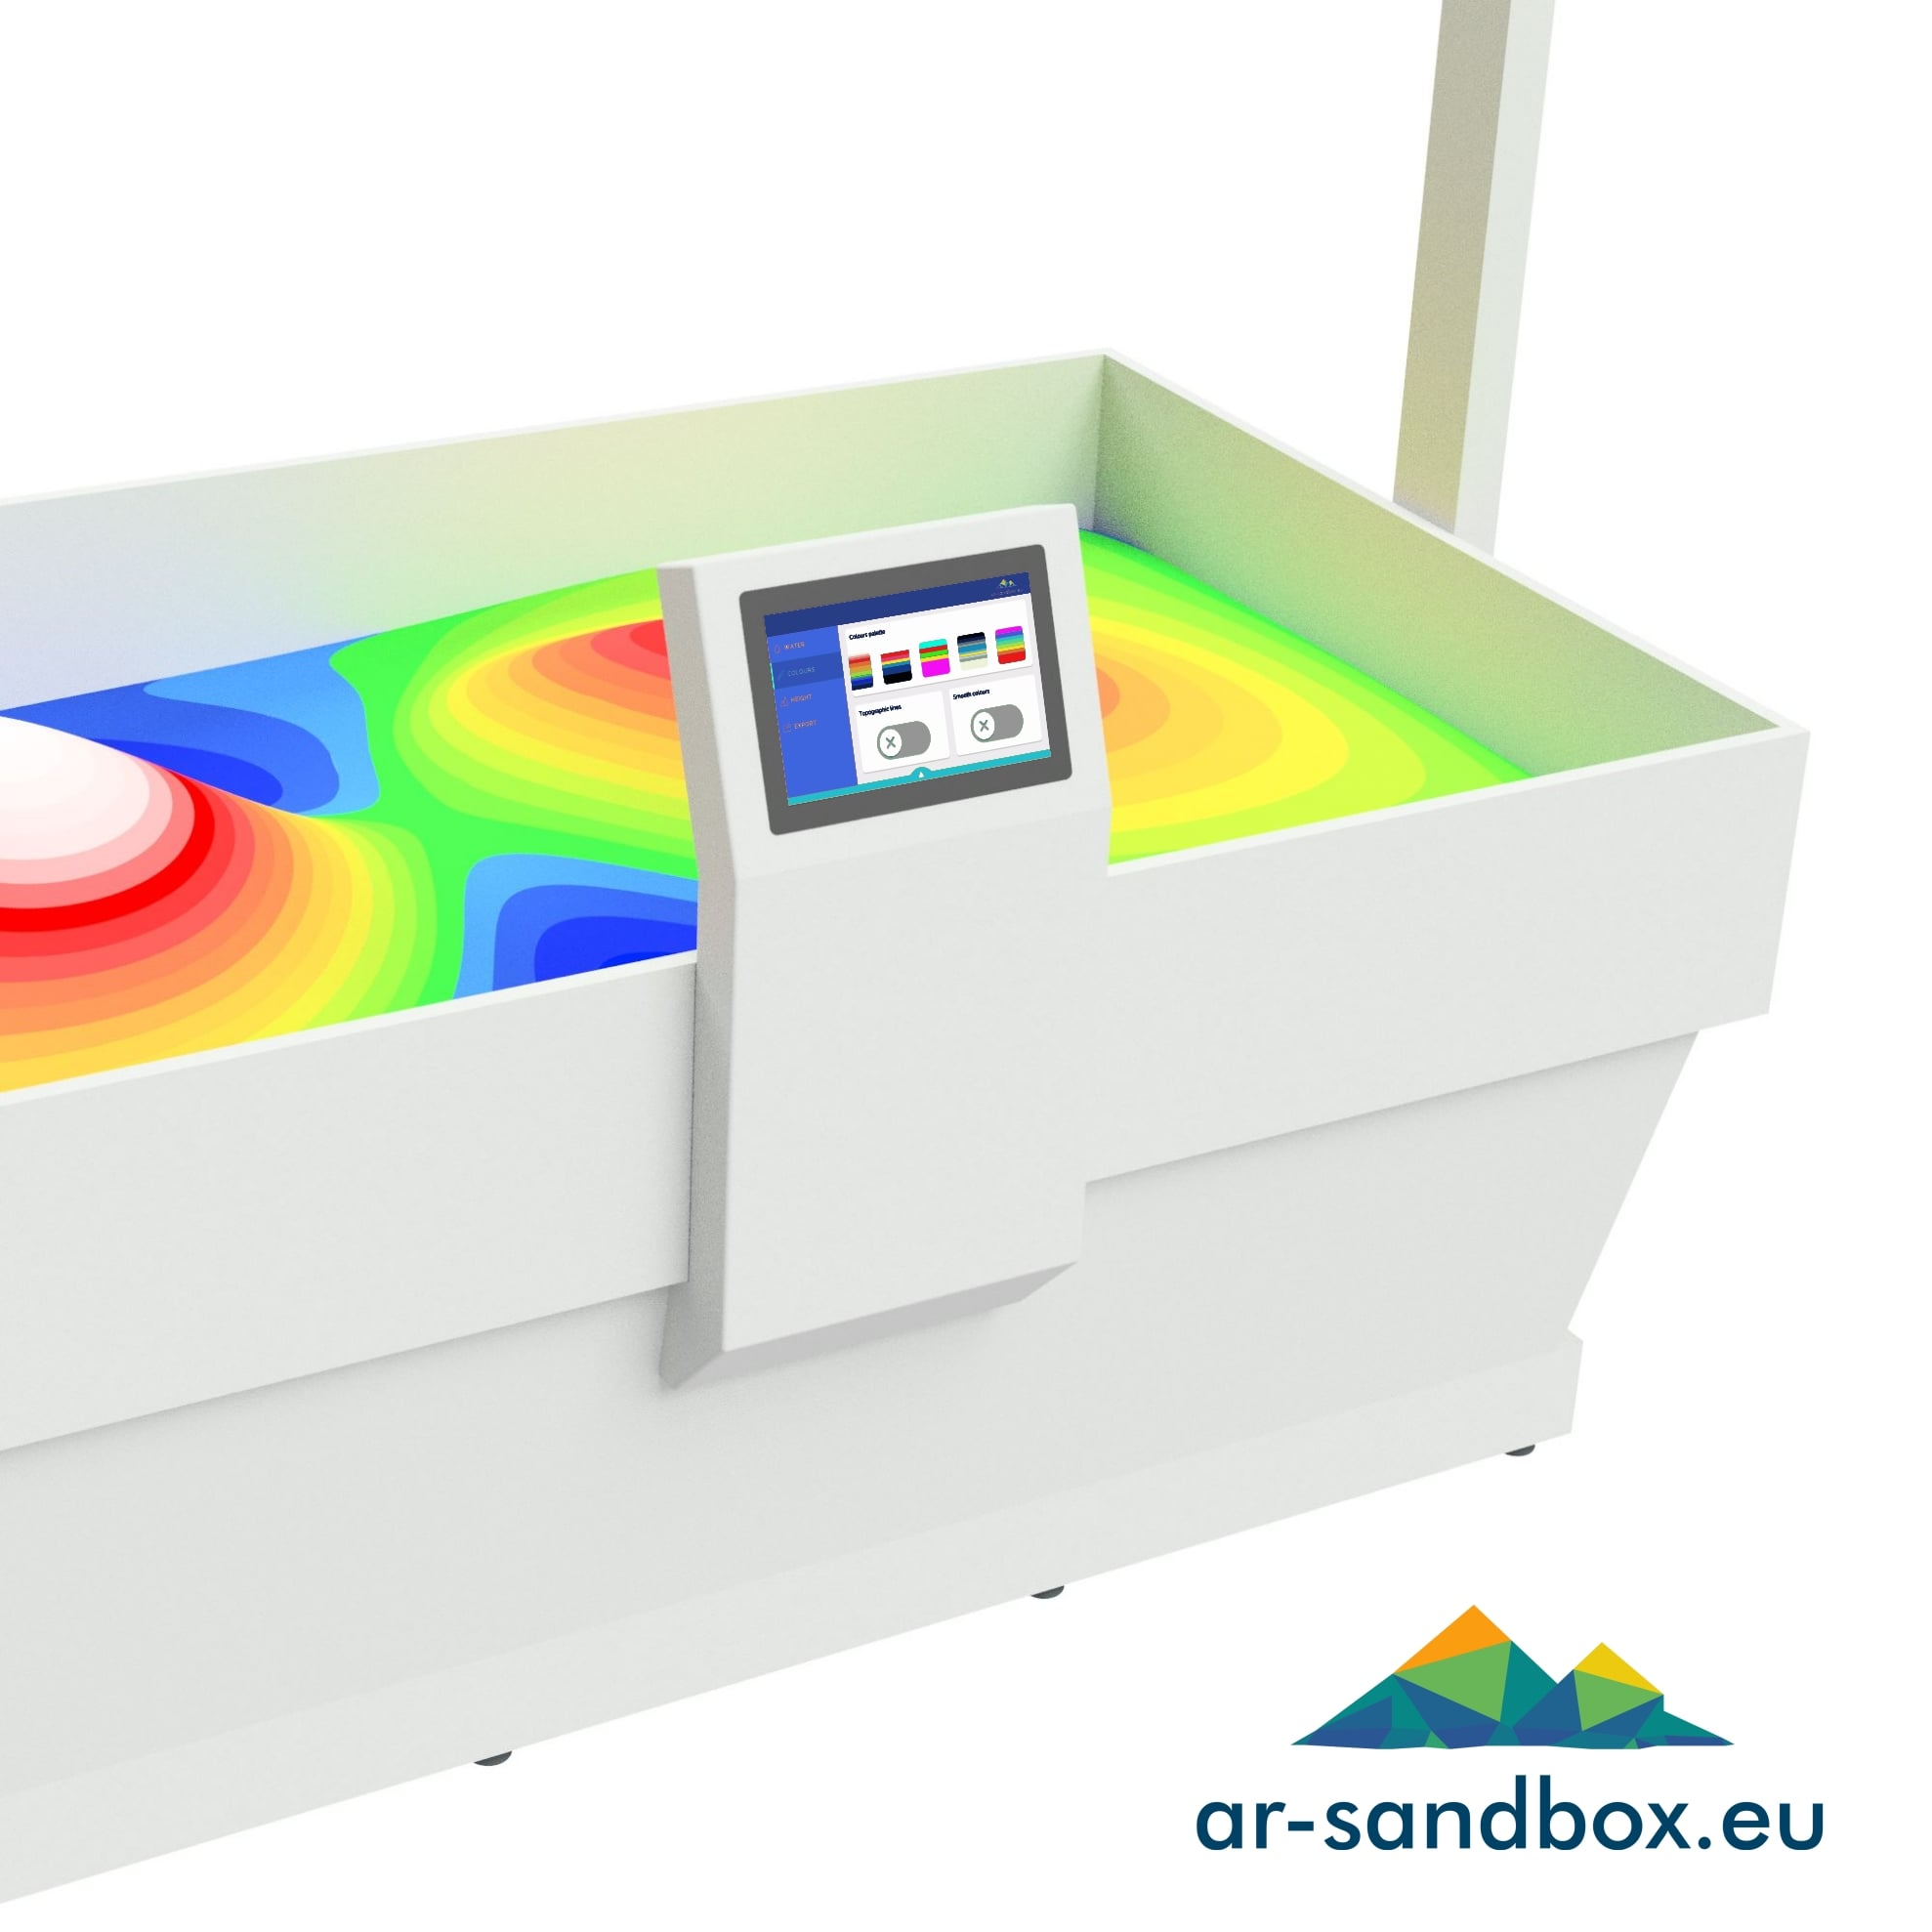 Augmented Reality Sandbox – Large Standalone Model